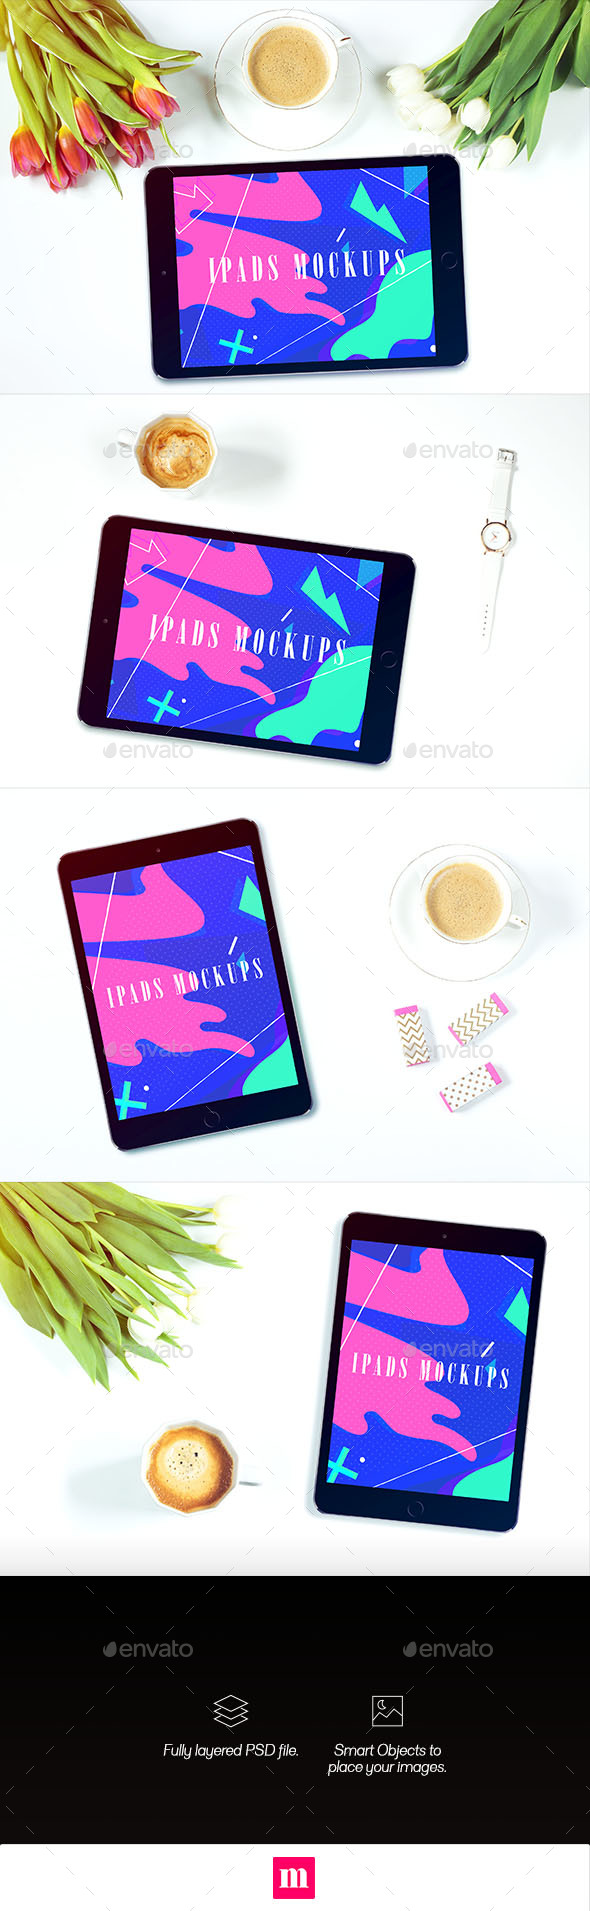 Pads - Mockups VOL04 (Displays)